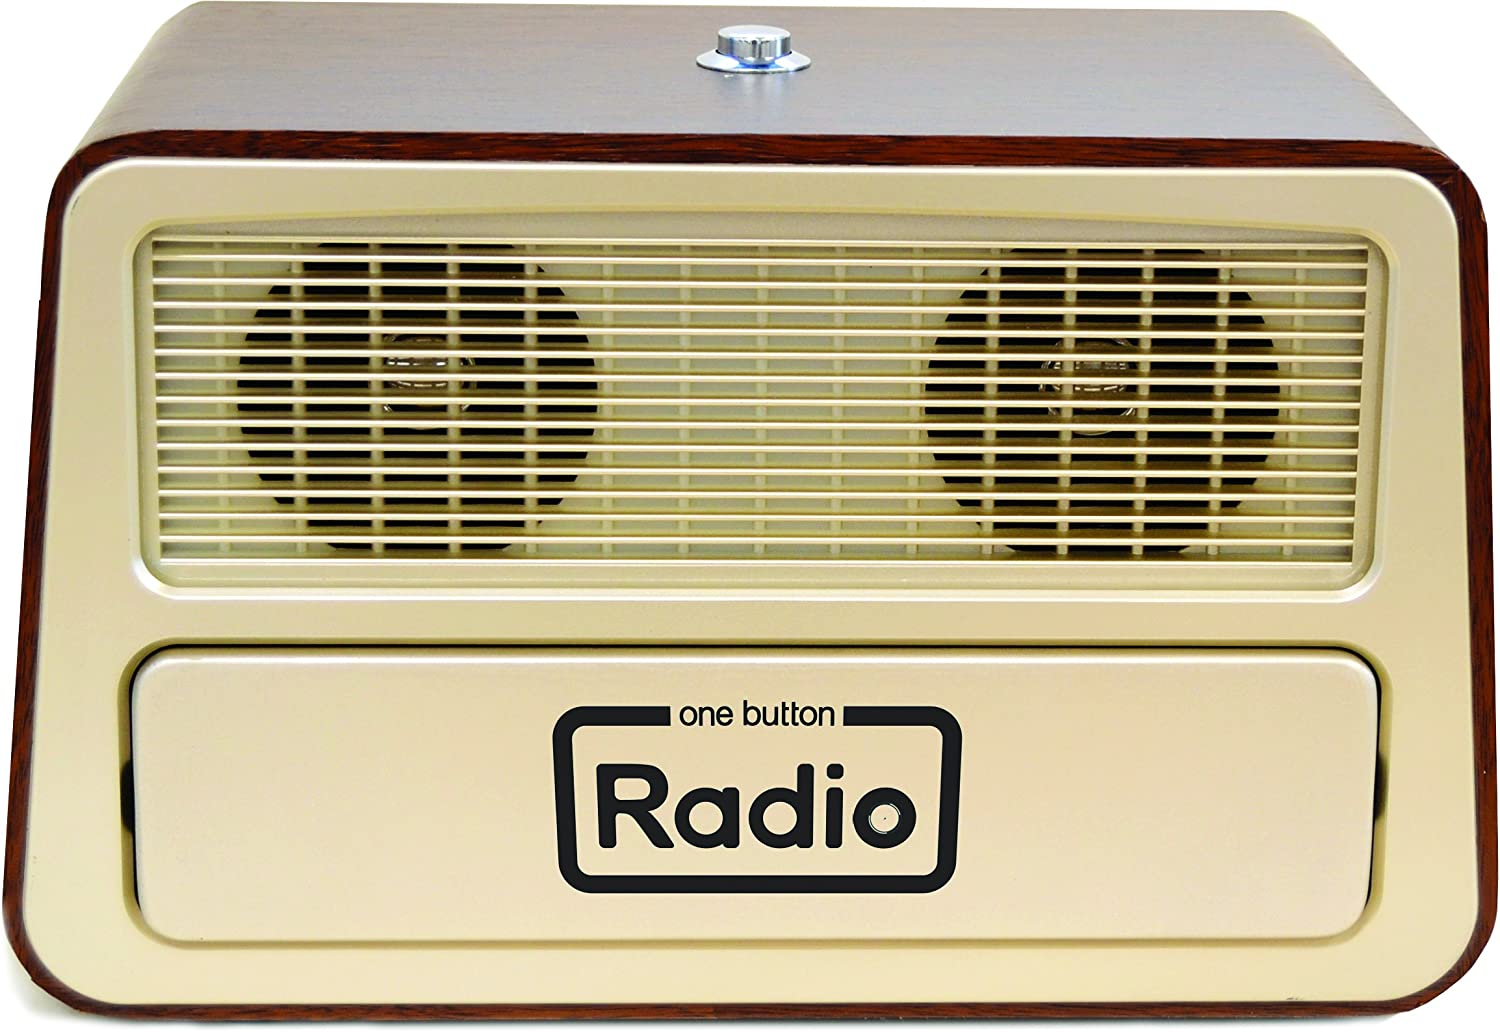 "Memory Loss One Button Radio/Large Analog Retro Style Dementia Radio/Size: 11.75""w x 7.25""h x 6.25""d"